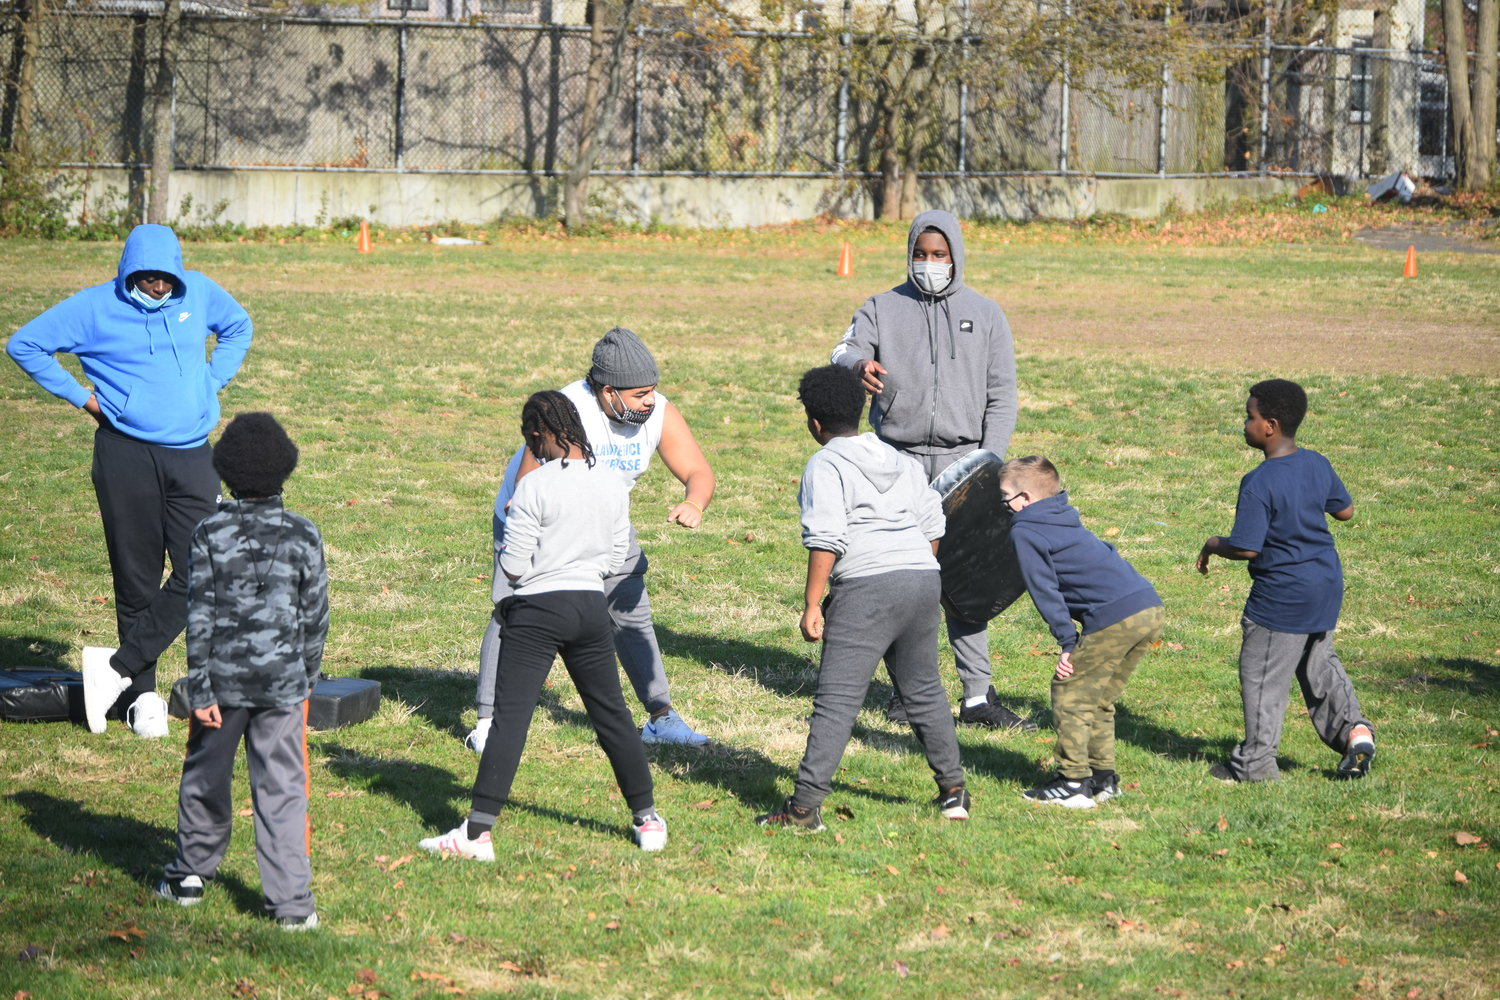 Lawrence High School football player John Calderón, center, taught the children blocking at the football clinic.